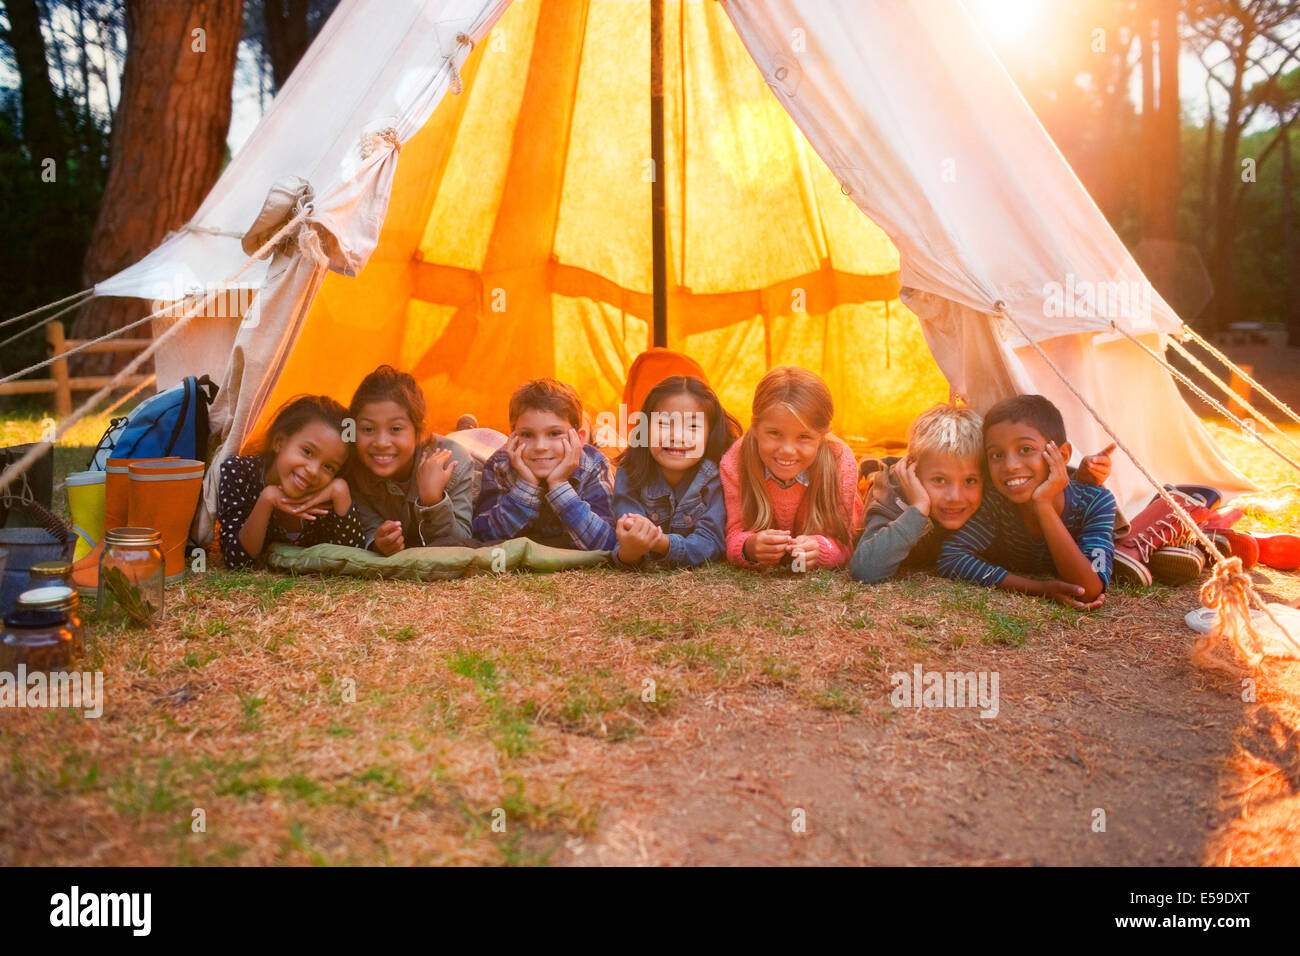 Enfants sourire en tipi au camping Photo Stock